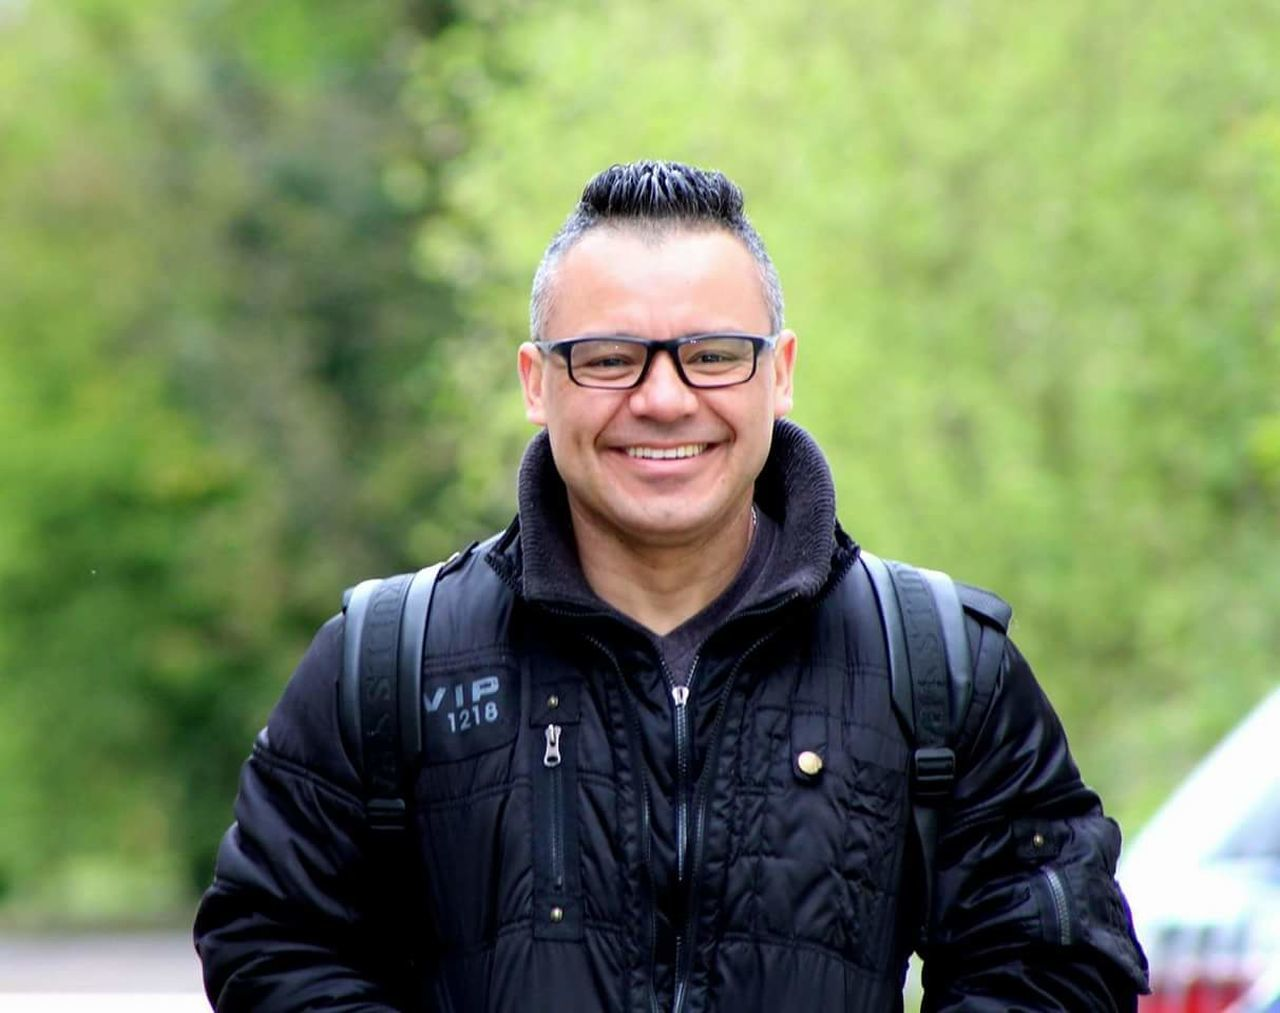 smiling, real people, front view, looking at camera, focus on foreground, mid adult, outdoors, one person, portrait, happiness, day, leisure activity, standing, lifestyles, eyeglasses, nature, young adult, one man only, adult, adults only, people